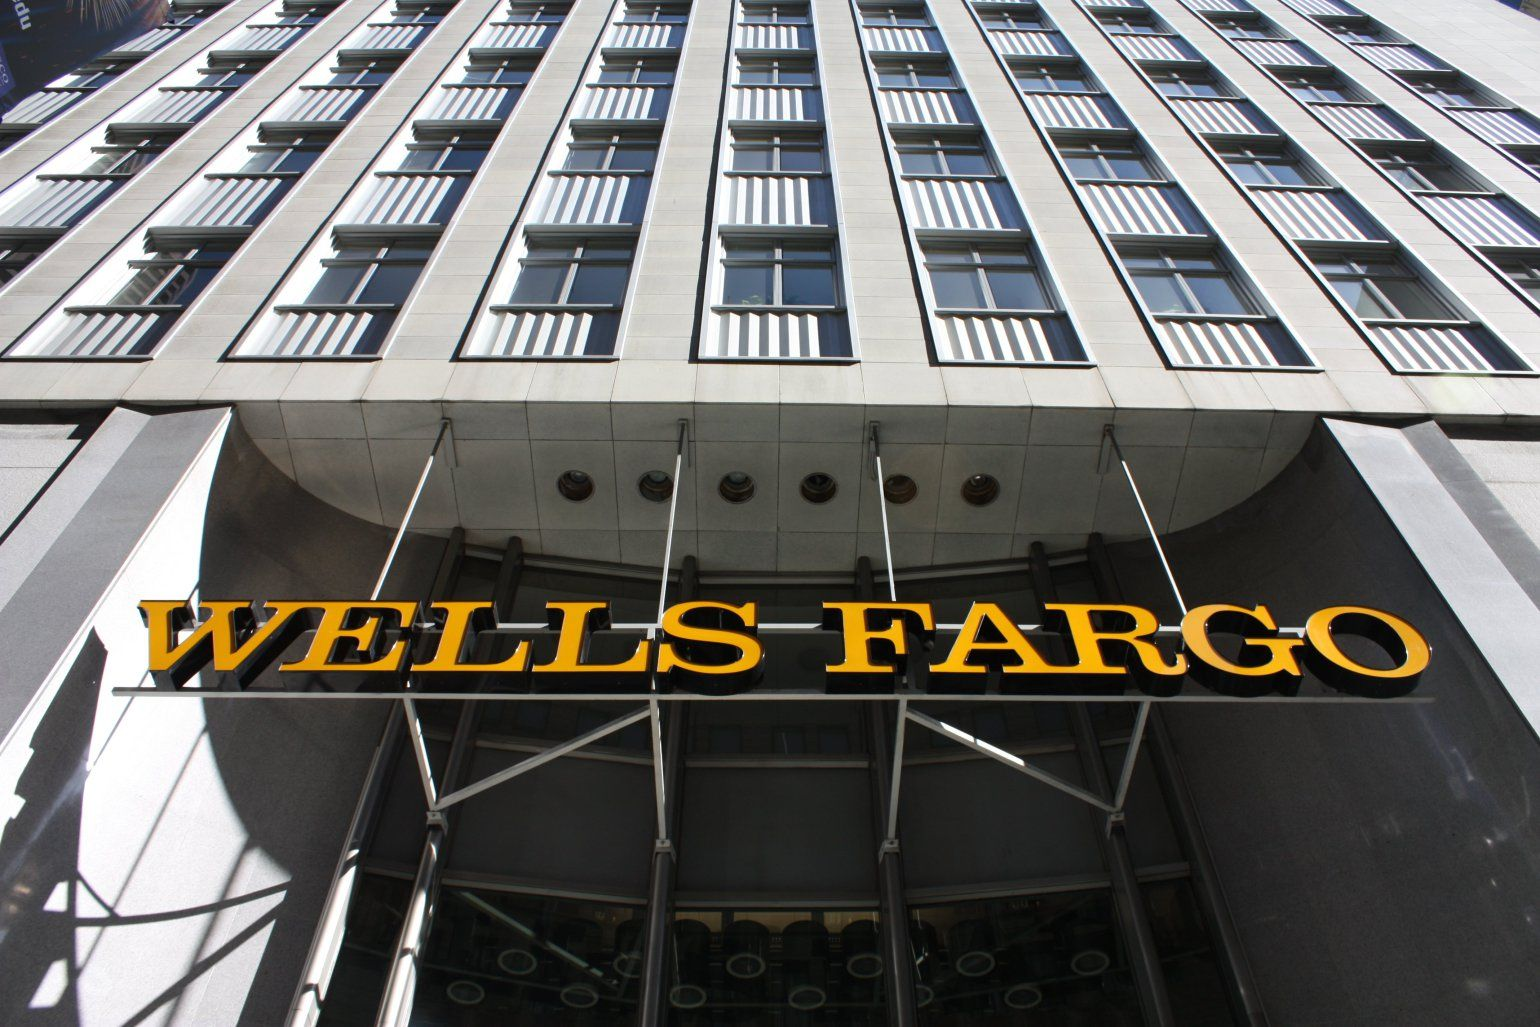 Feds order wells fargo to rehire whistleblower who